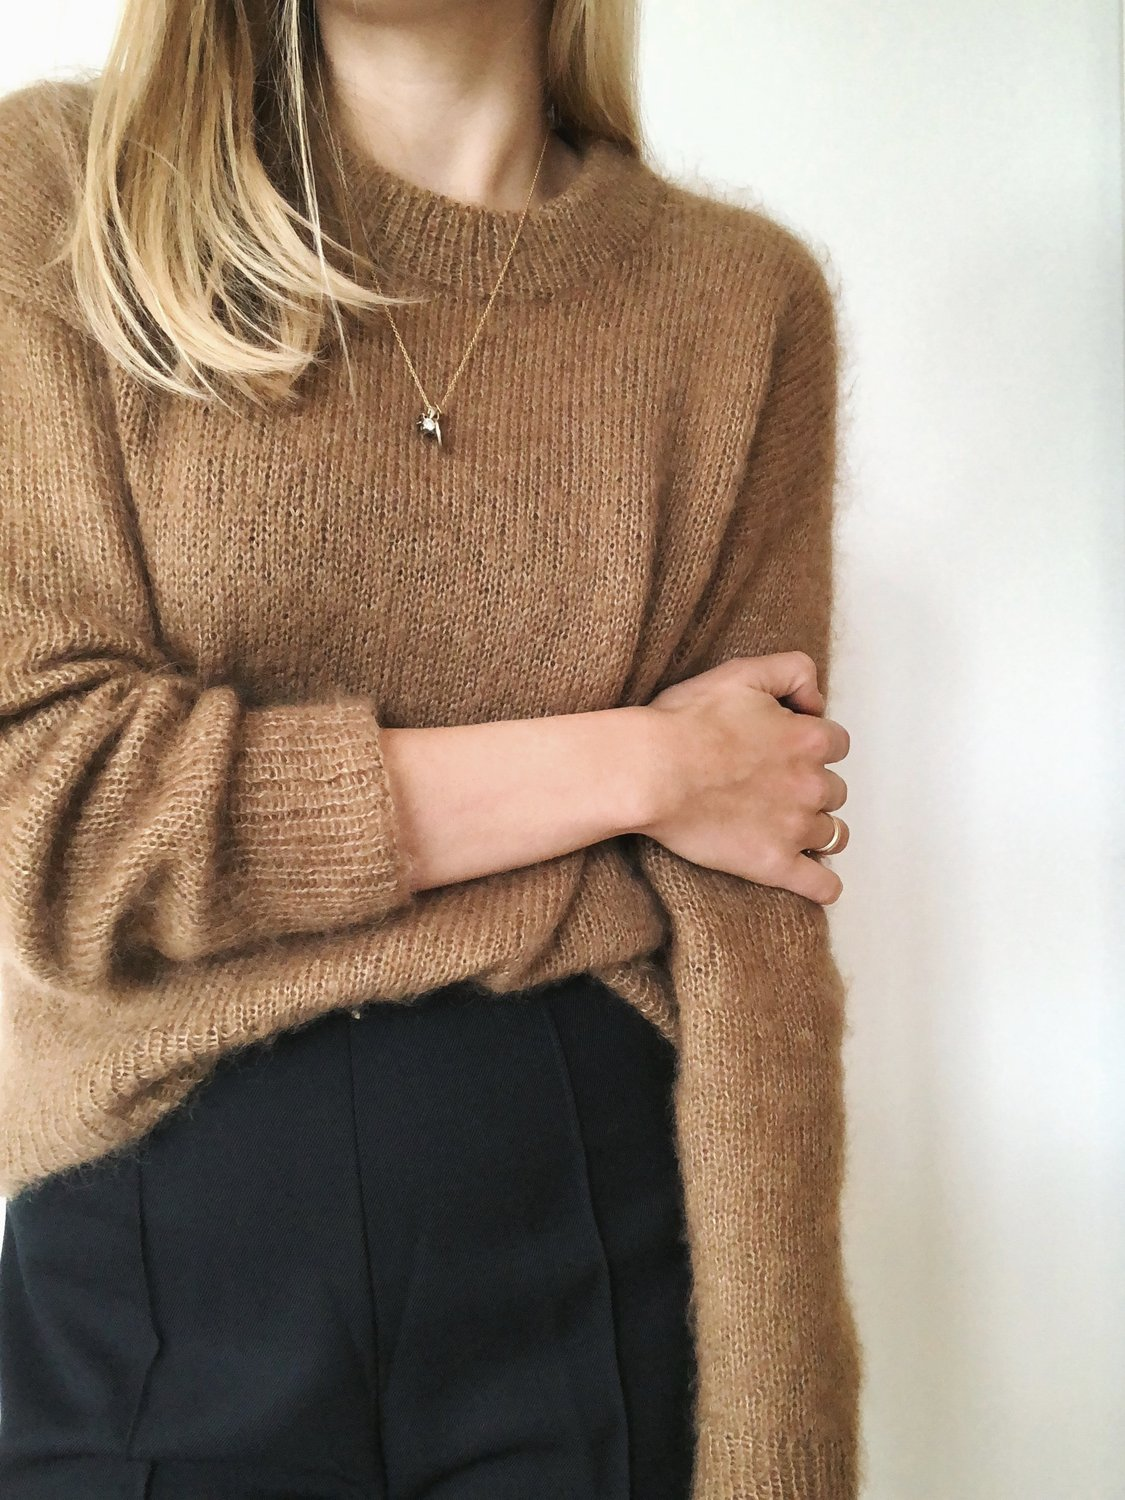 Stockholm SWEATER by PetiteKnit -neuleohje EN